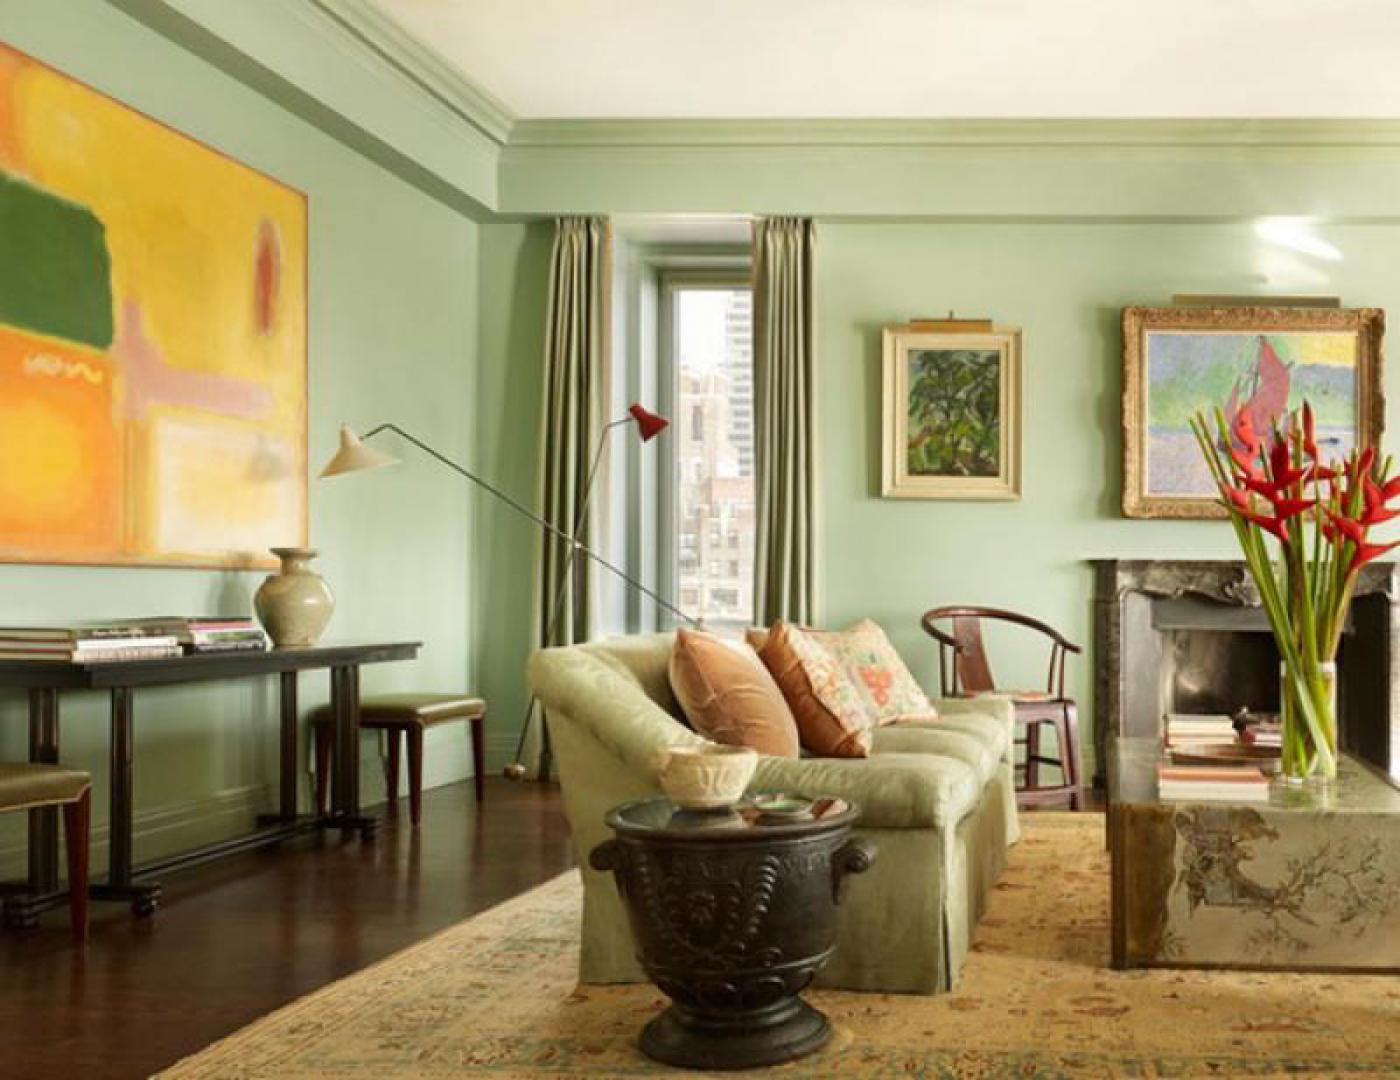 Apartment for Collectors of 20th Century Art